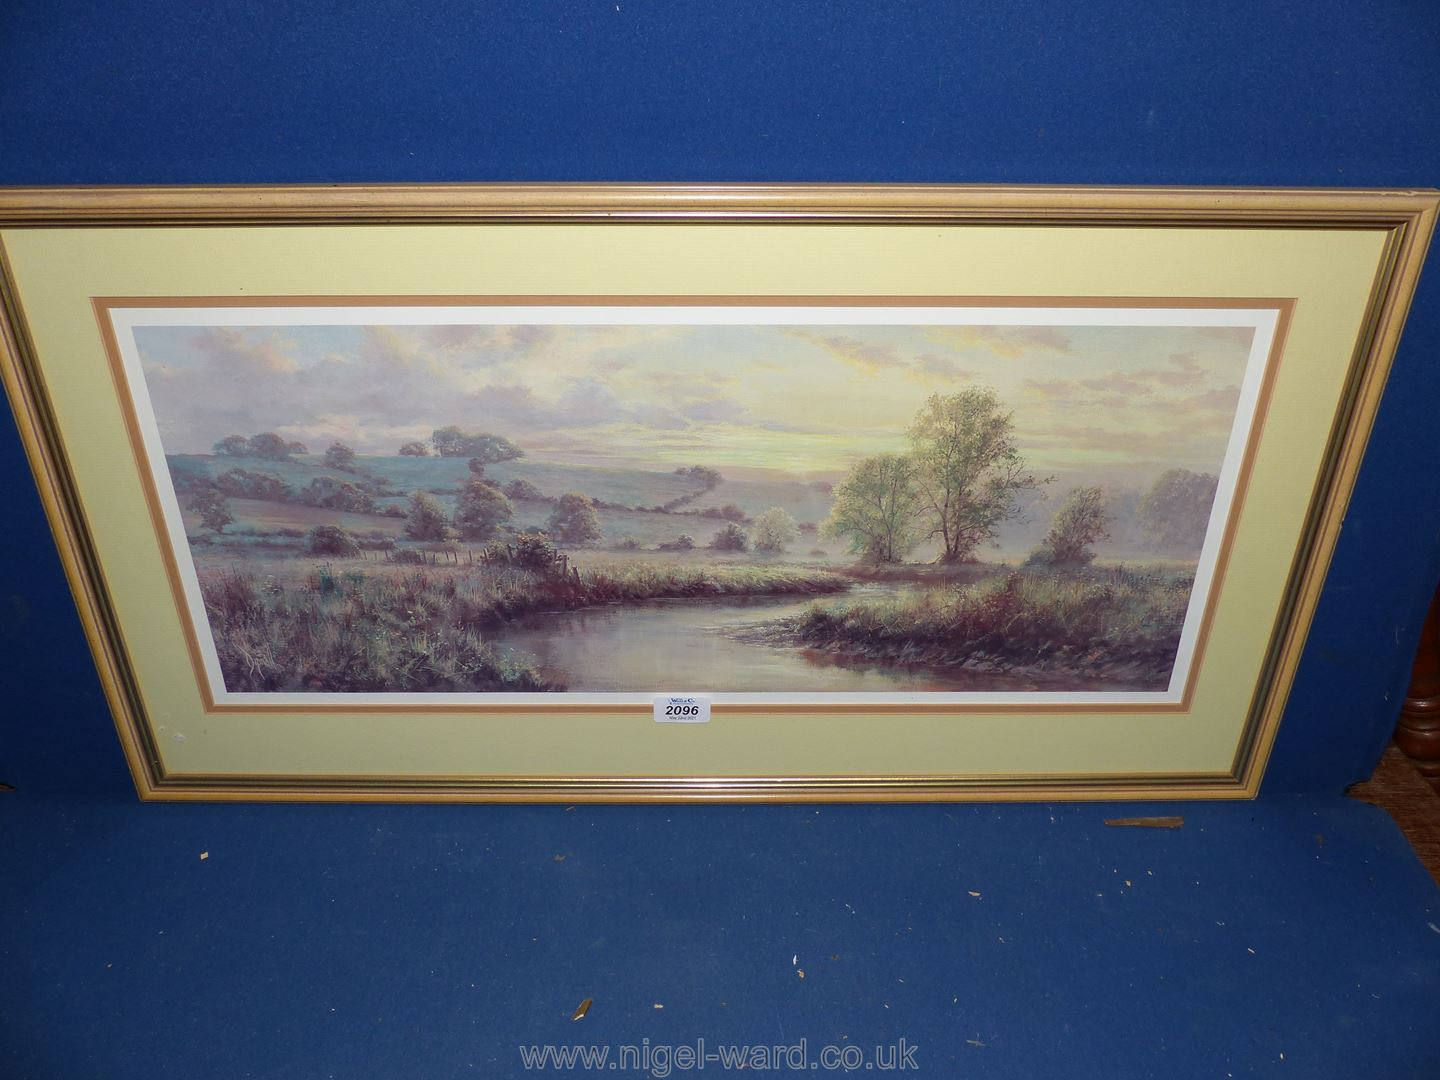 """A framed and mounted Print by David Dipnall, Landscape fields and stream, 31"""" x 16 1/2""""."""